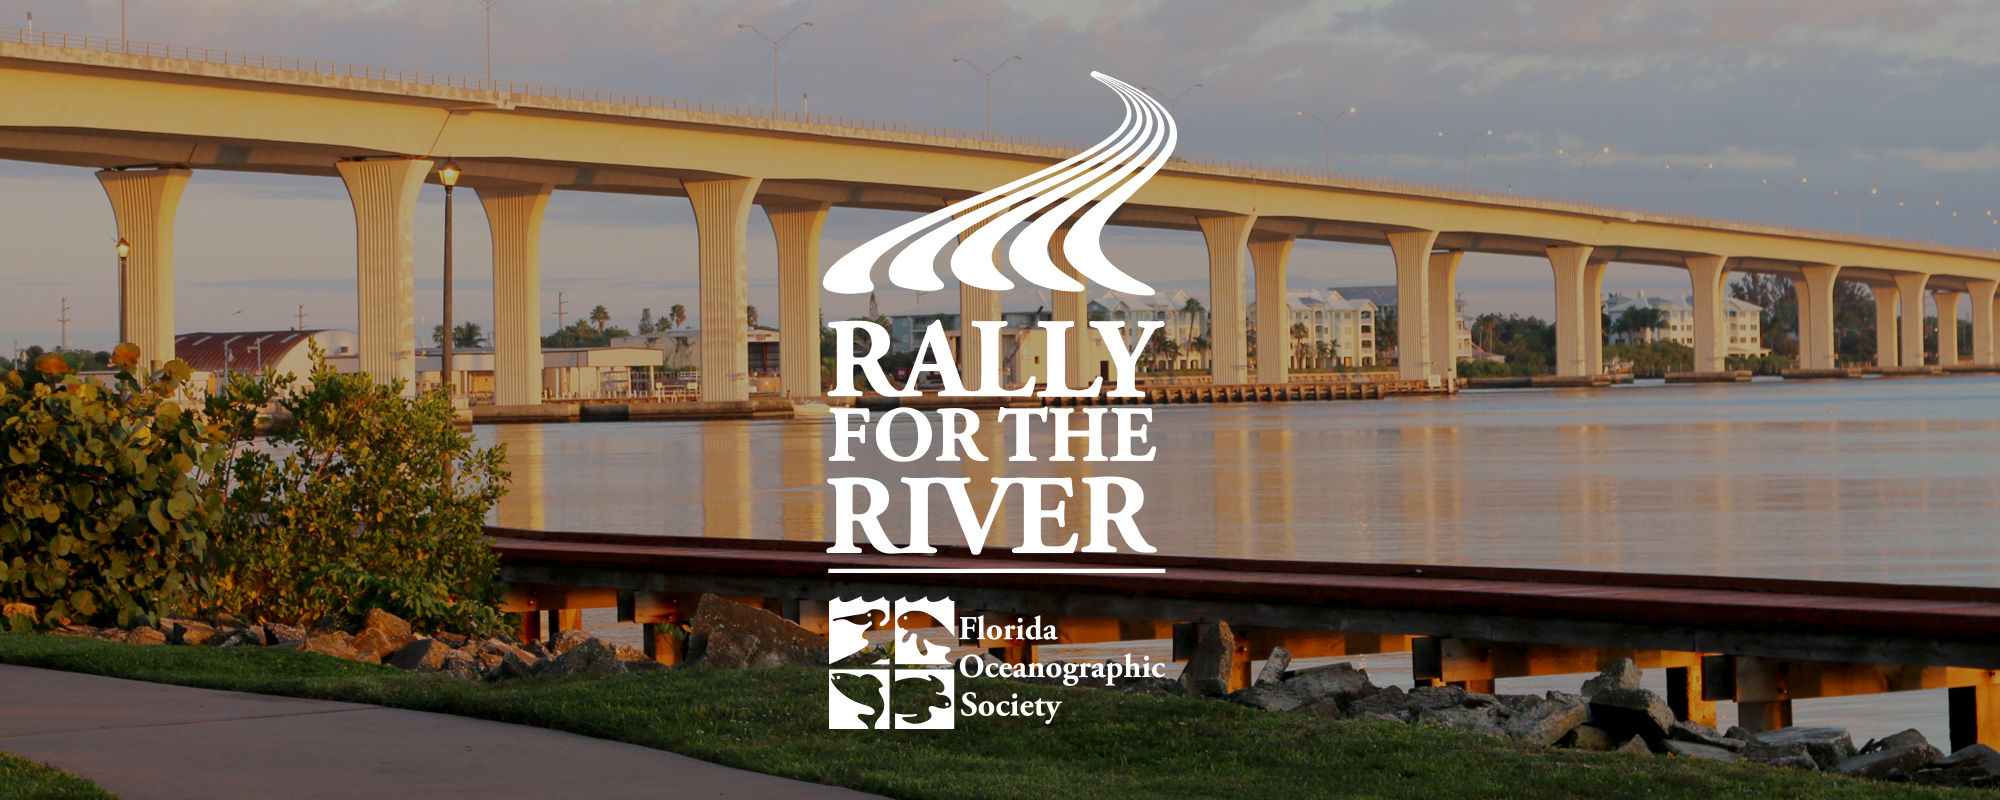 rally for the river logo and photo